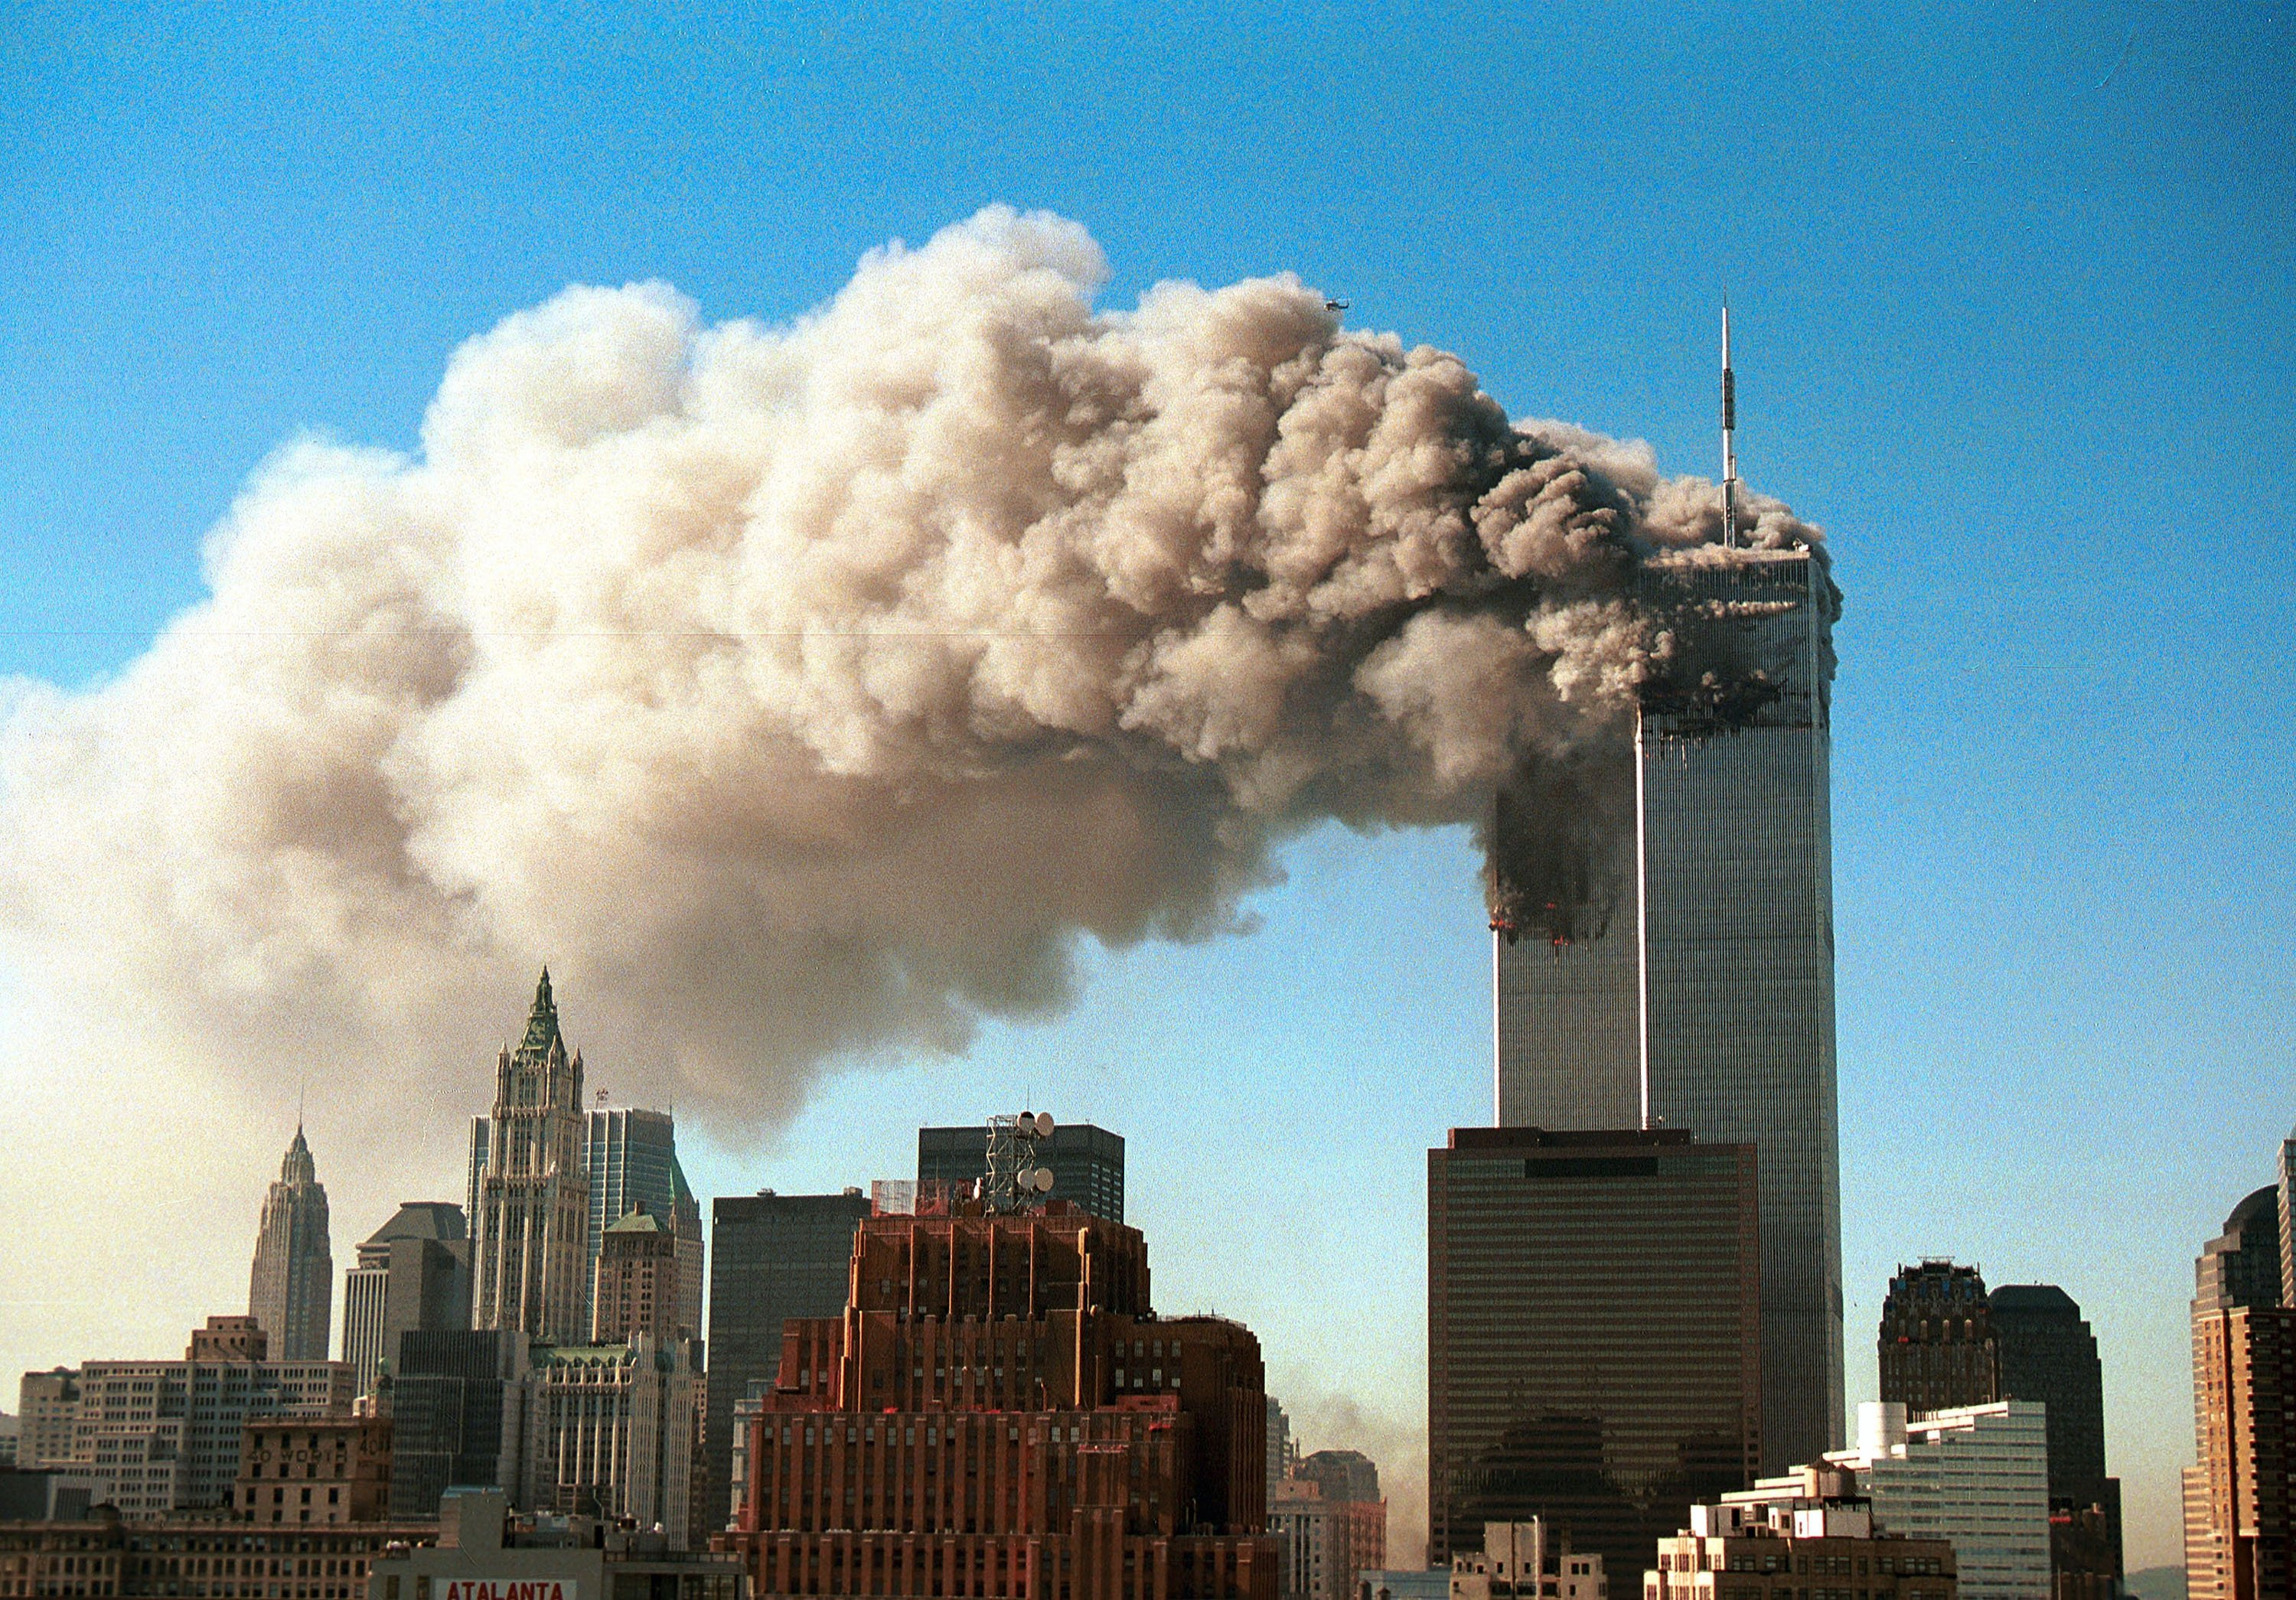 Rauch steigt aus den Twin Towers des World Trade Centers am 11. September 2001 in New York City. | Quelle: Getty Images